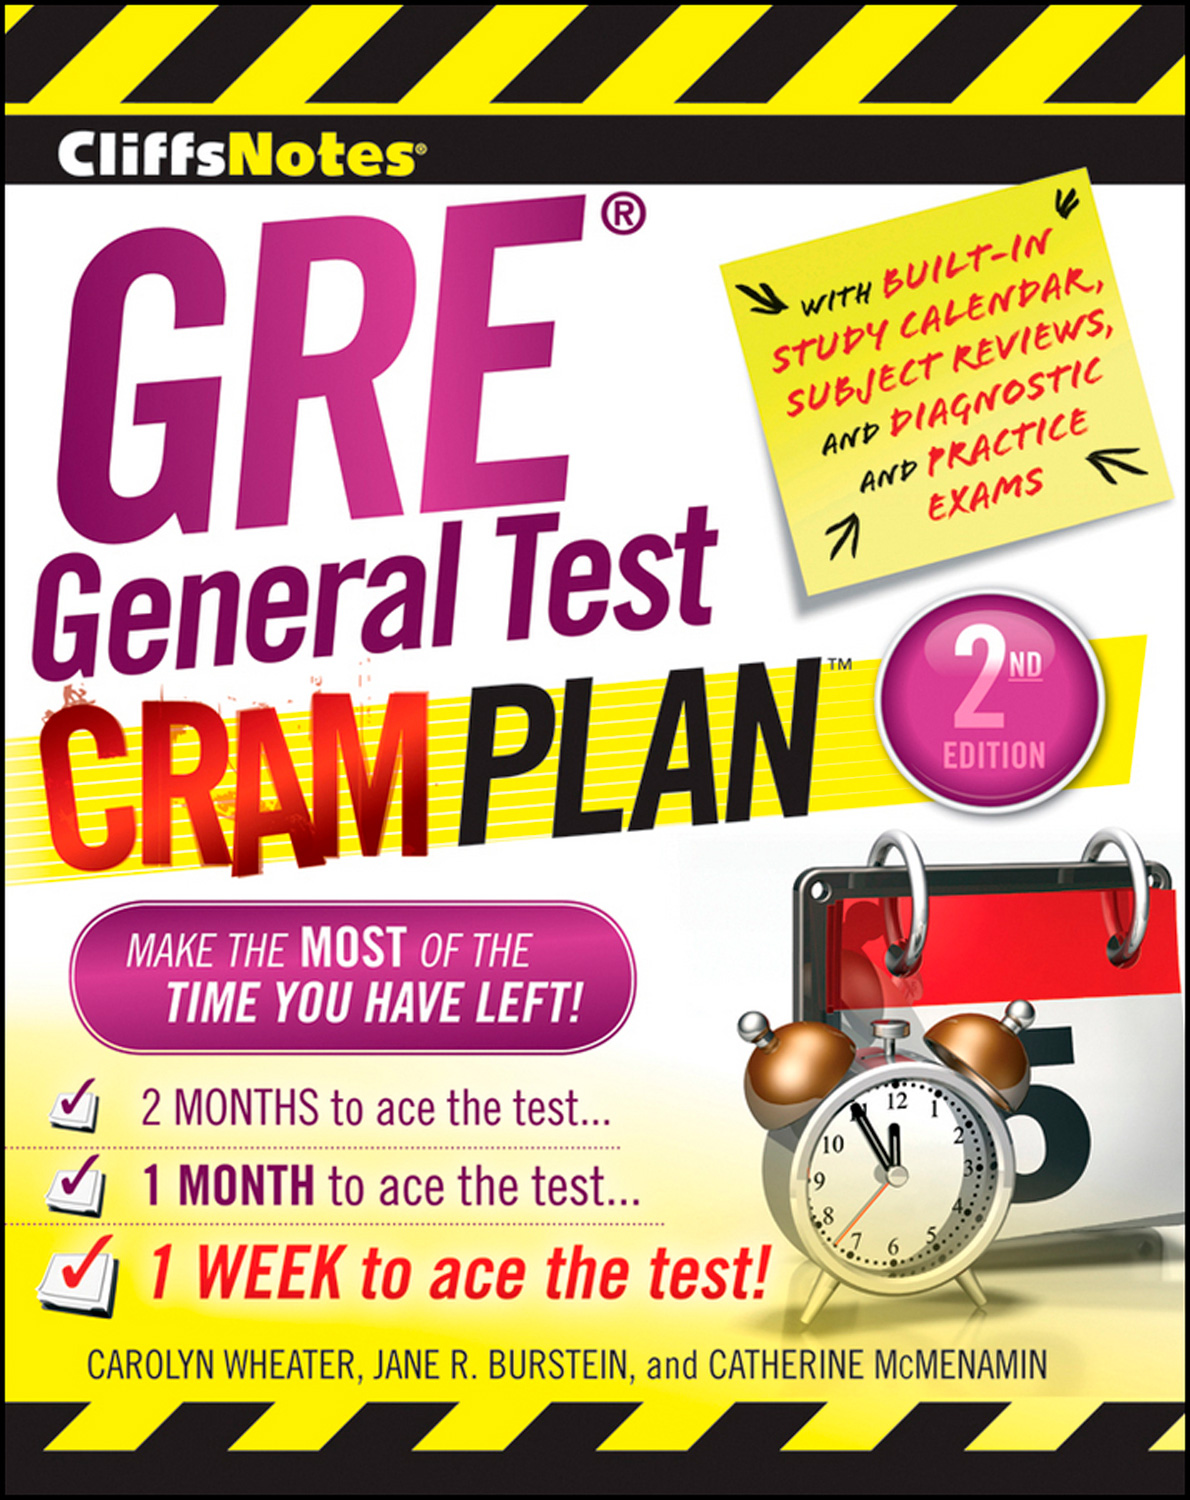 CliffsNotes GRE General Test Cram Plan 2nd Edition-9780470878736